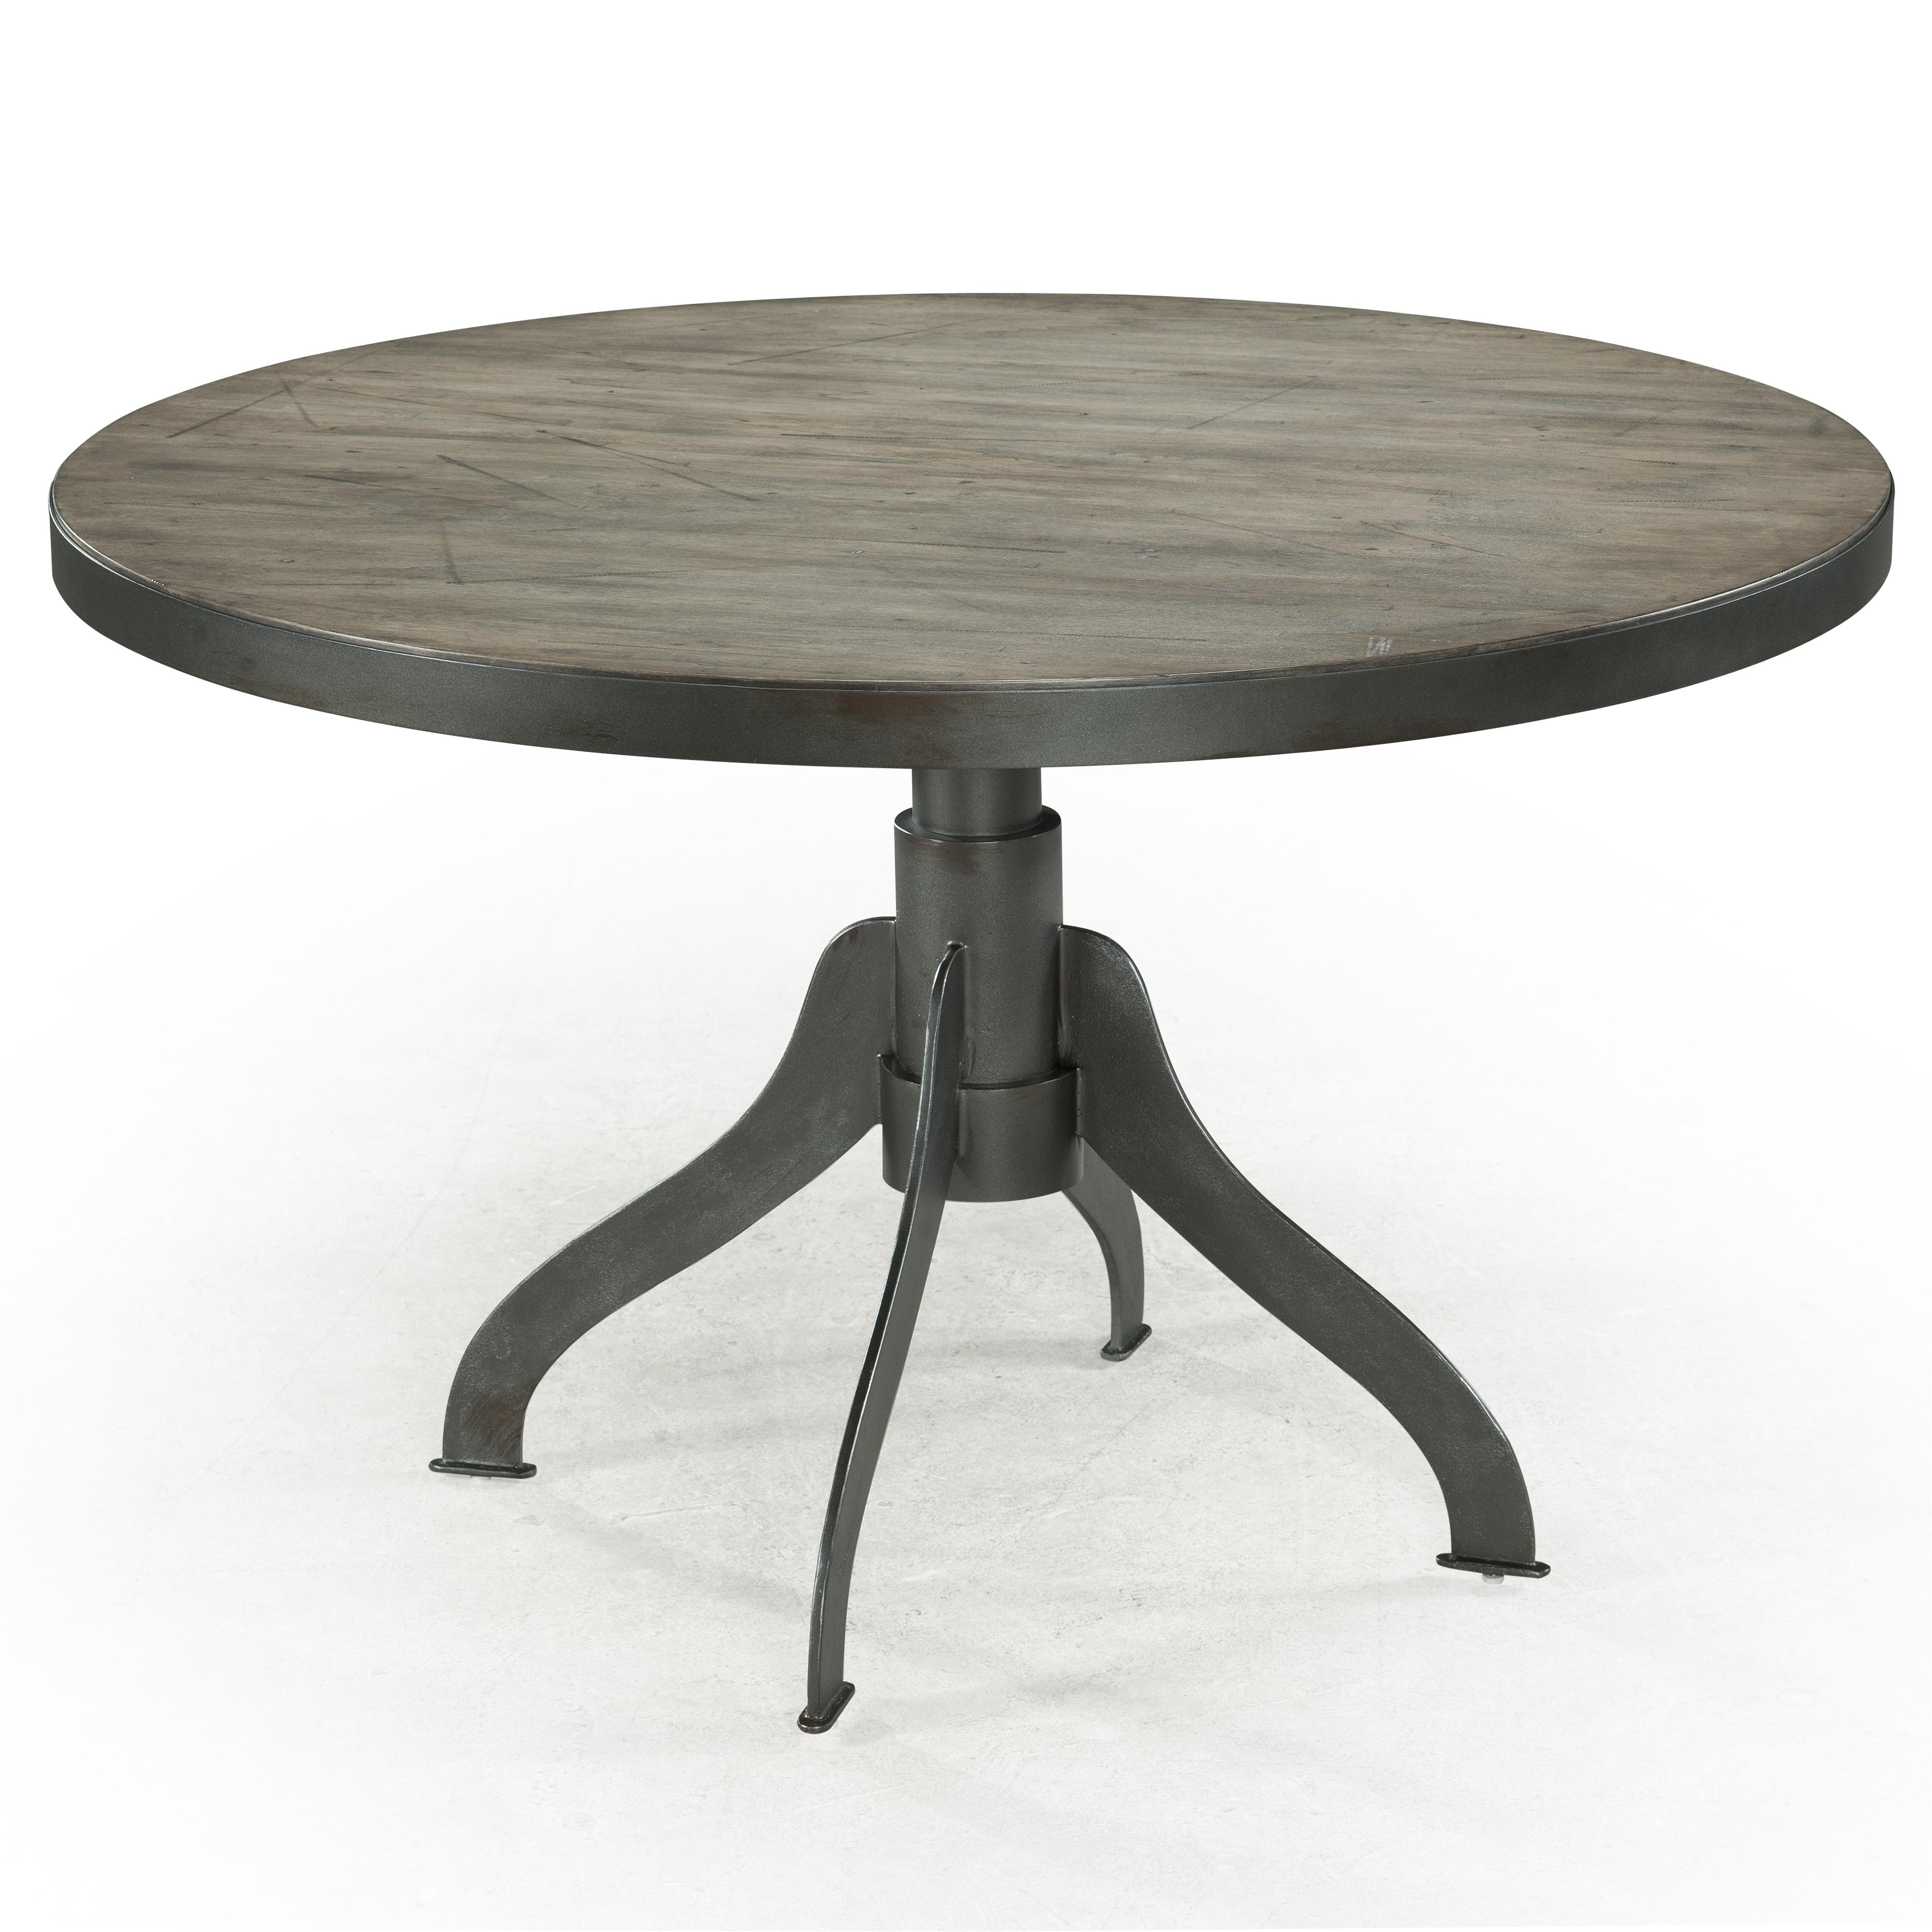 Magnussen Home  Walton Round Dining Table - Item Number: D2469-22